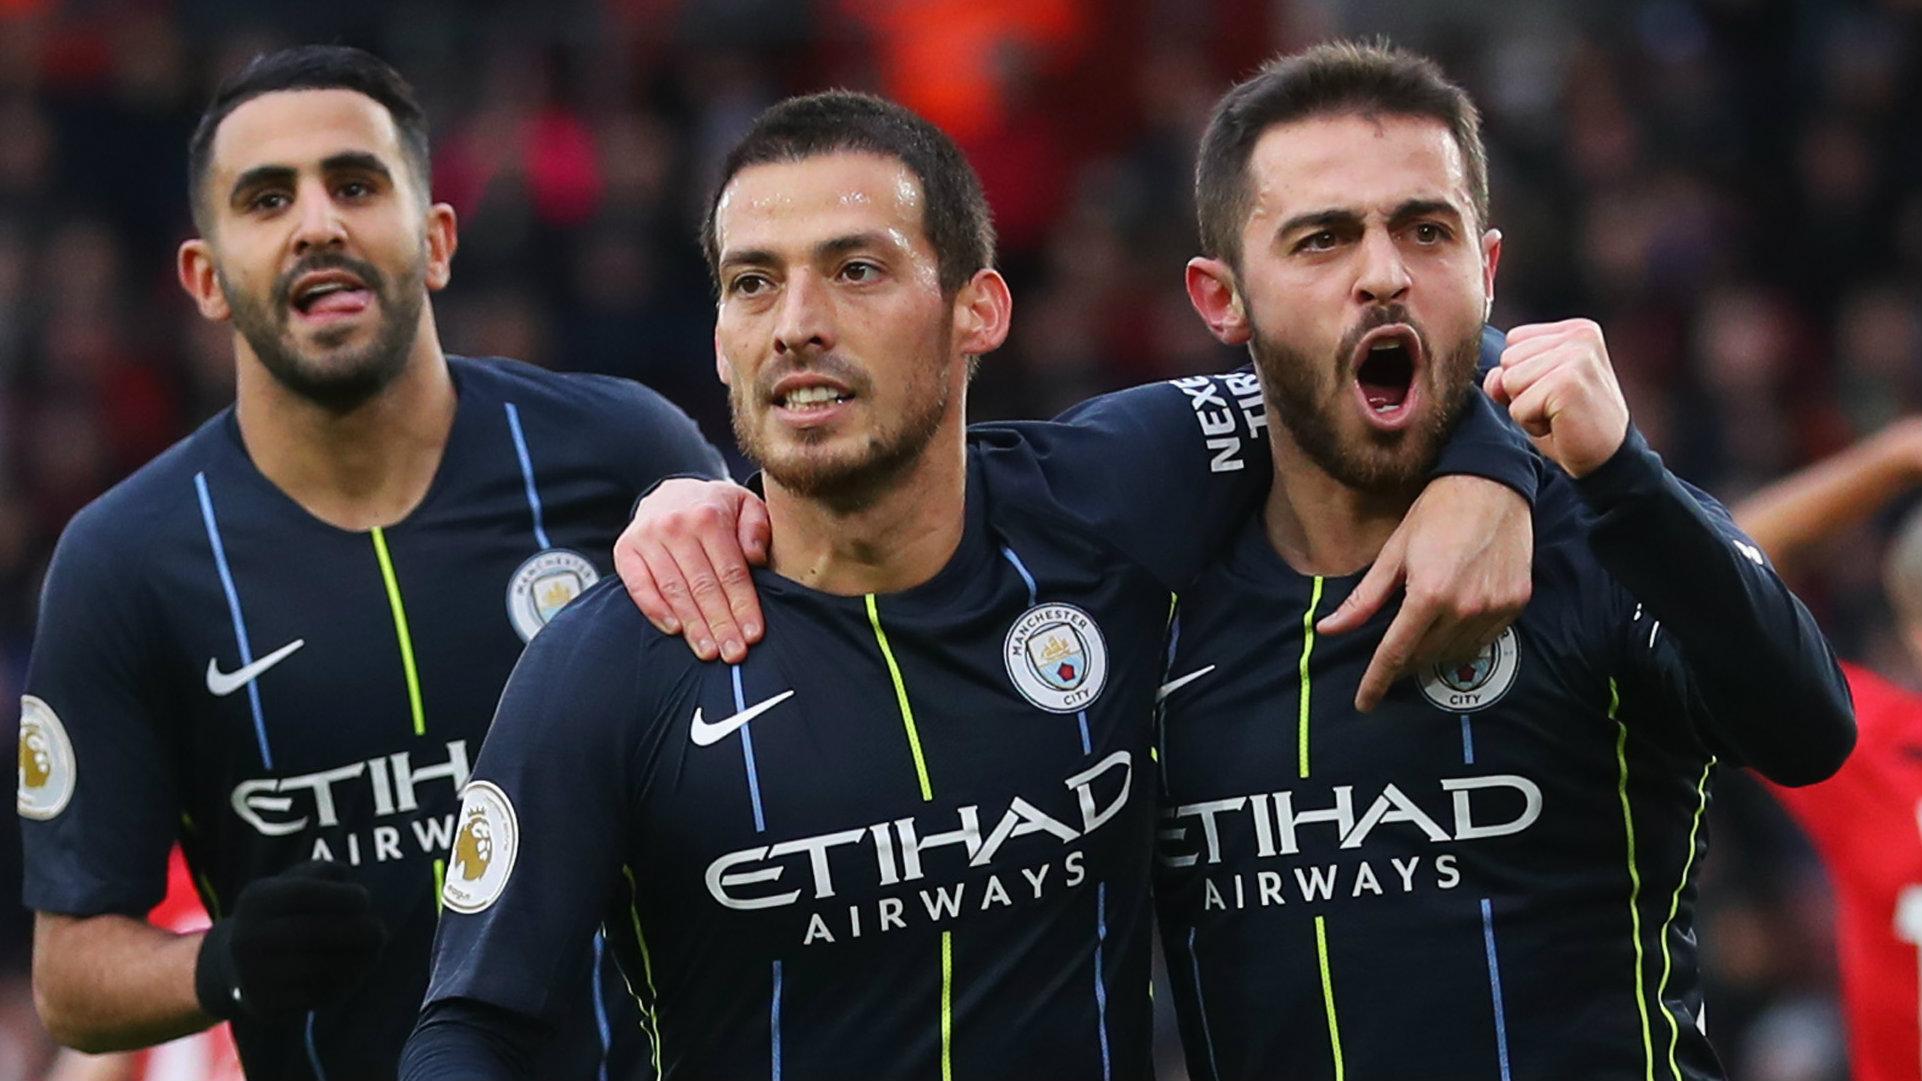 Manchester City vs Liverpool: 3 Key Battles To Watch Out For